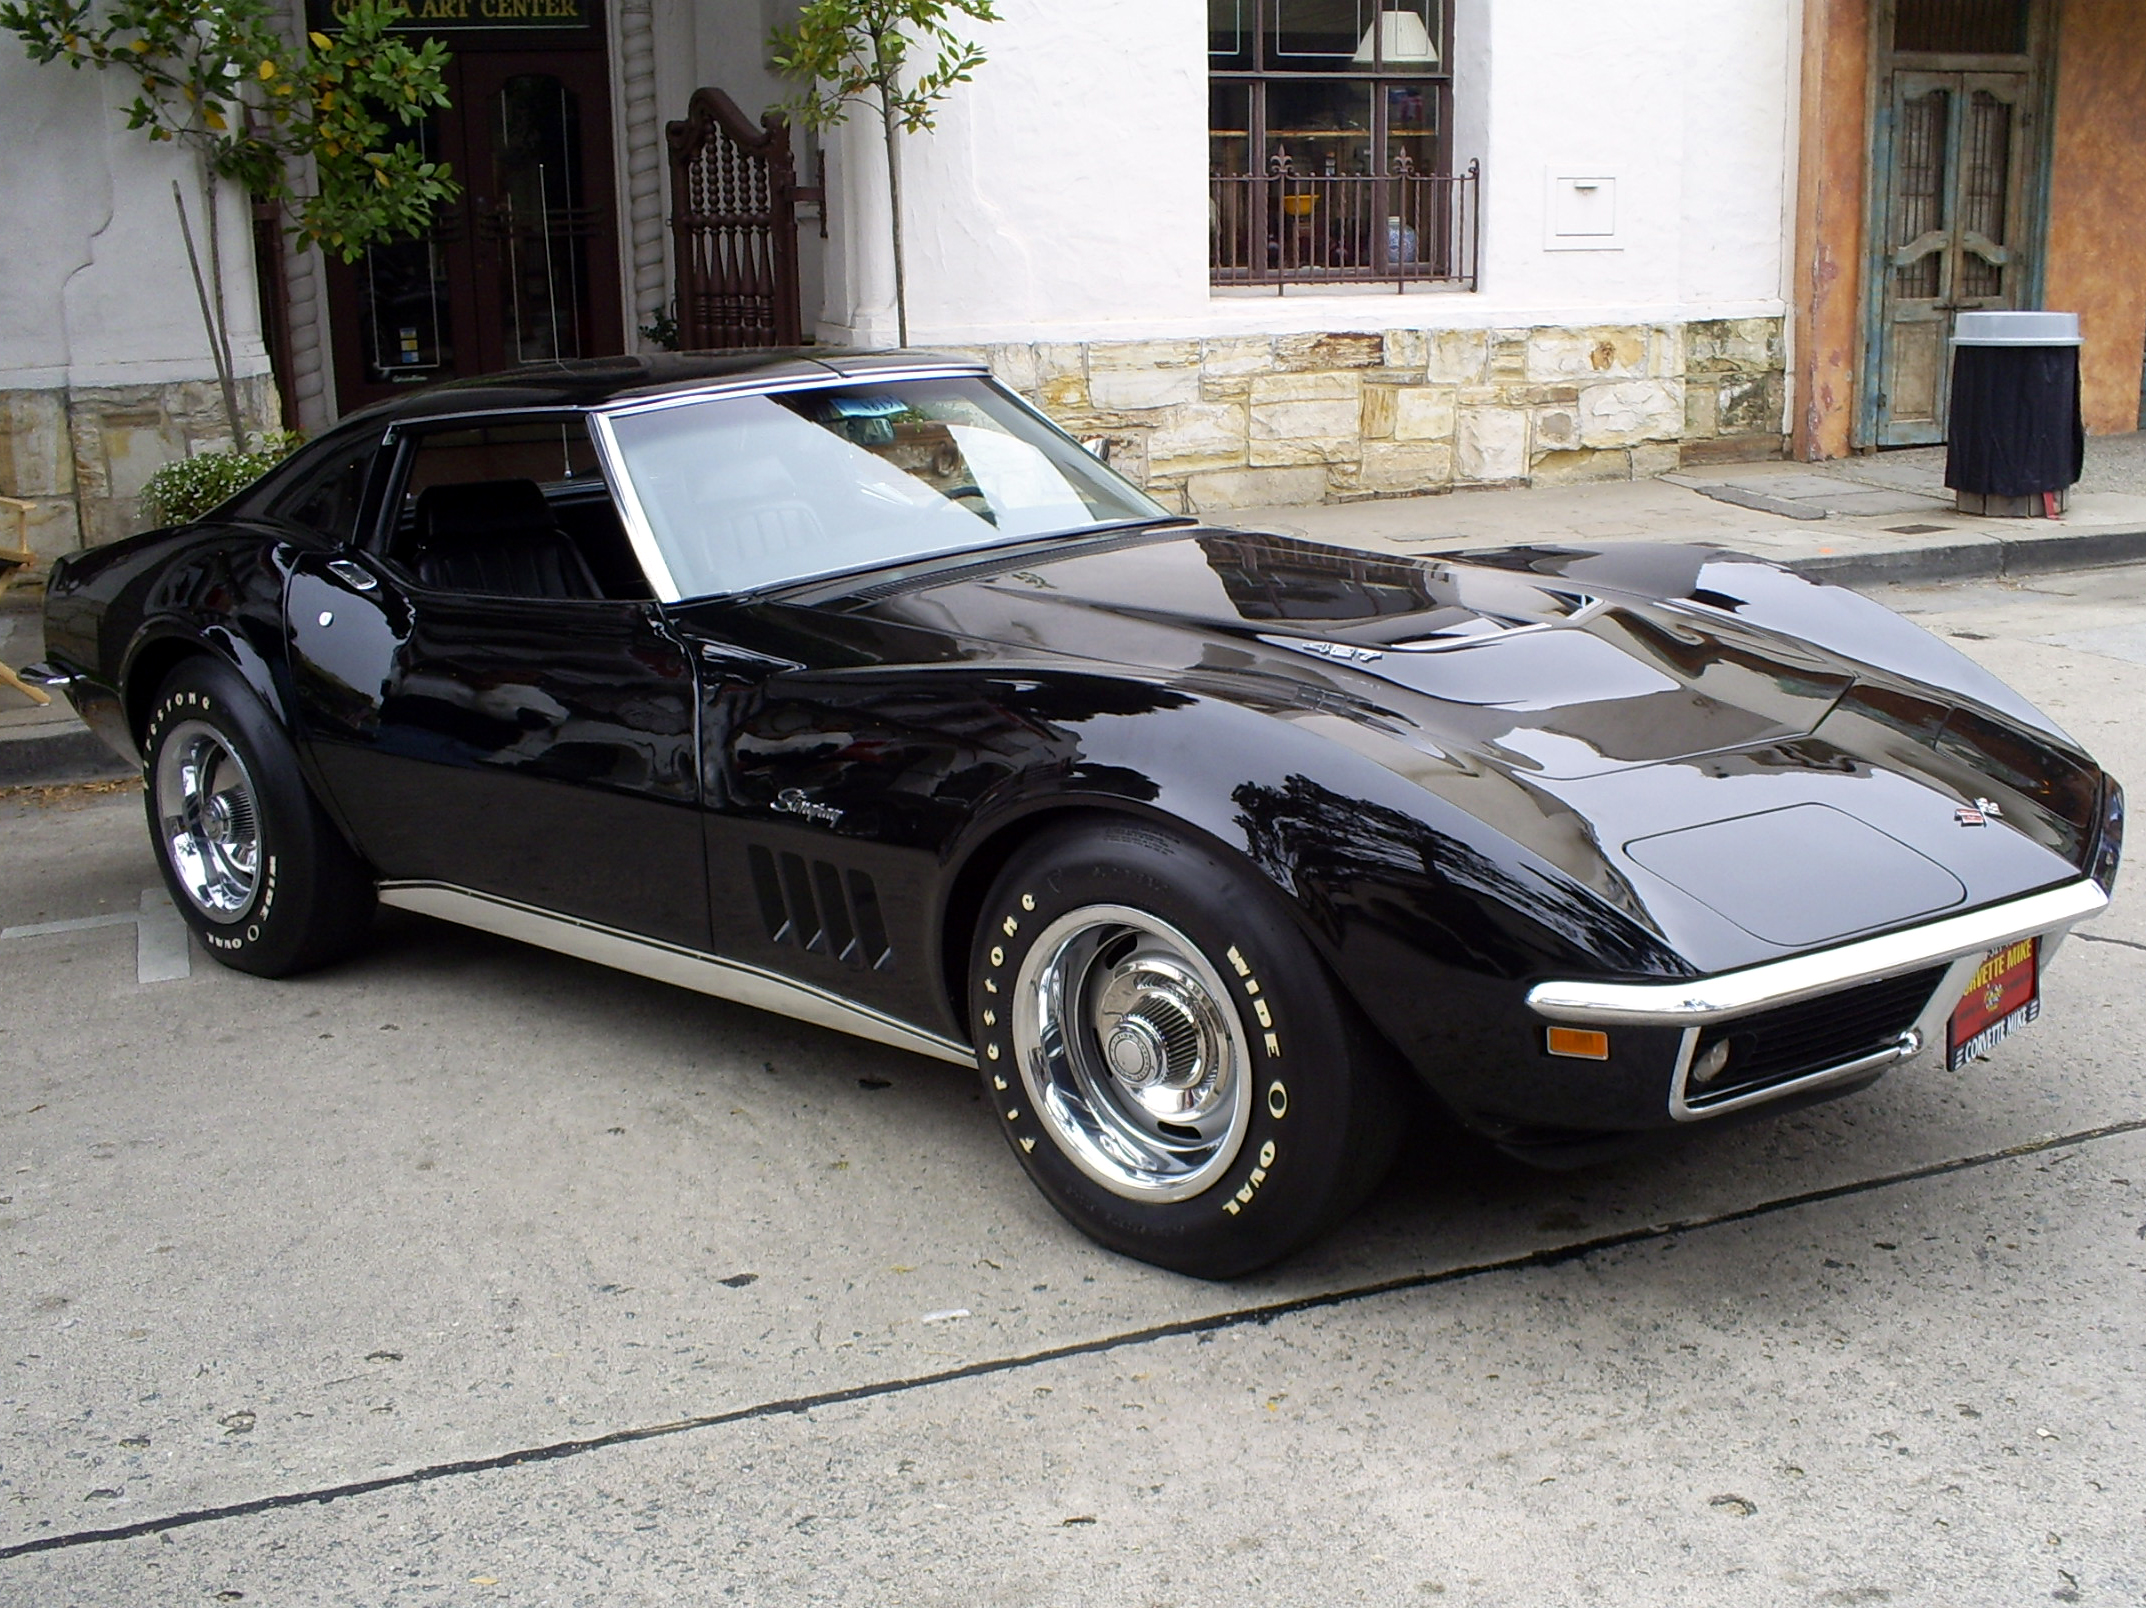 black_Corvette_Stingray_427_by_Partywave